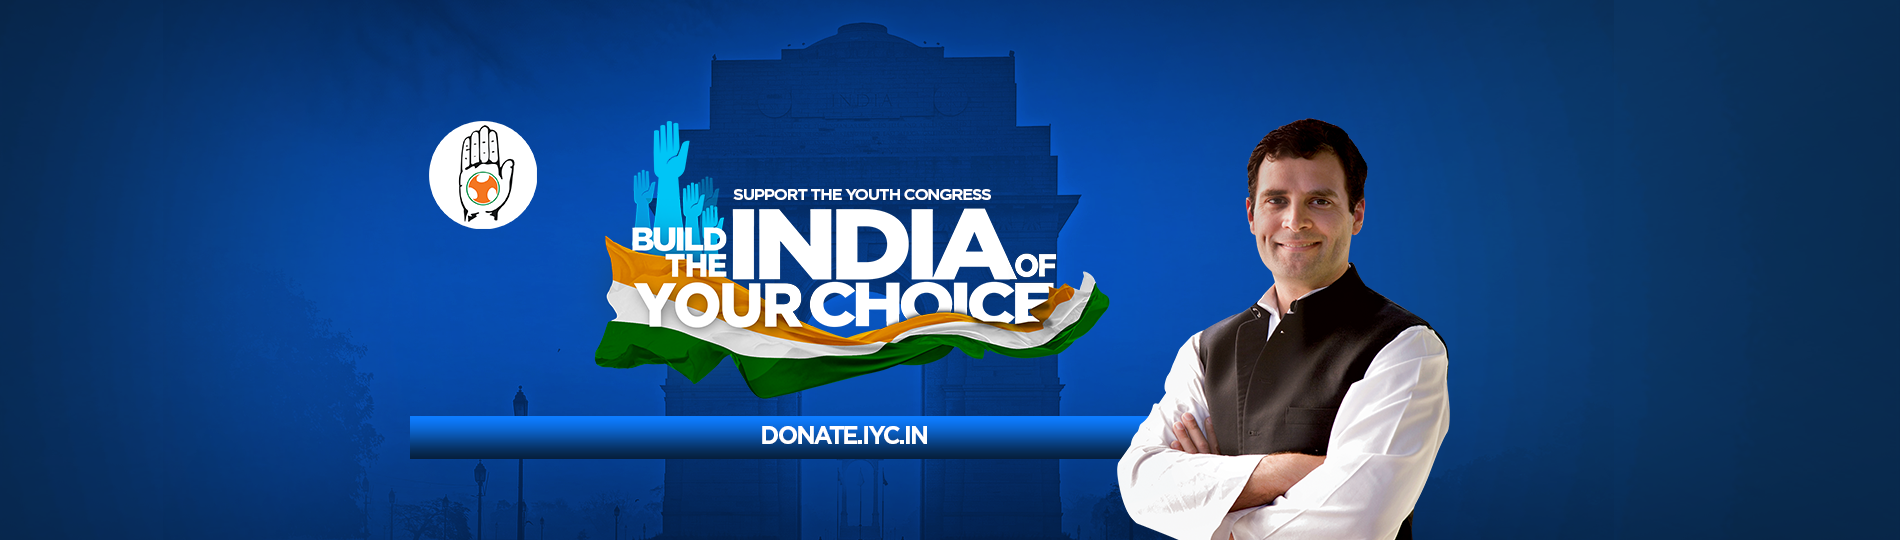 Home | Indian Youth Congress